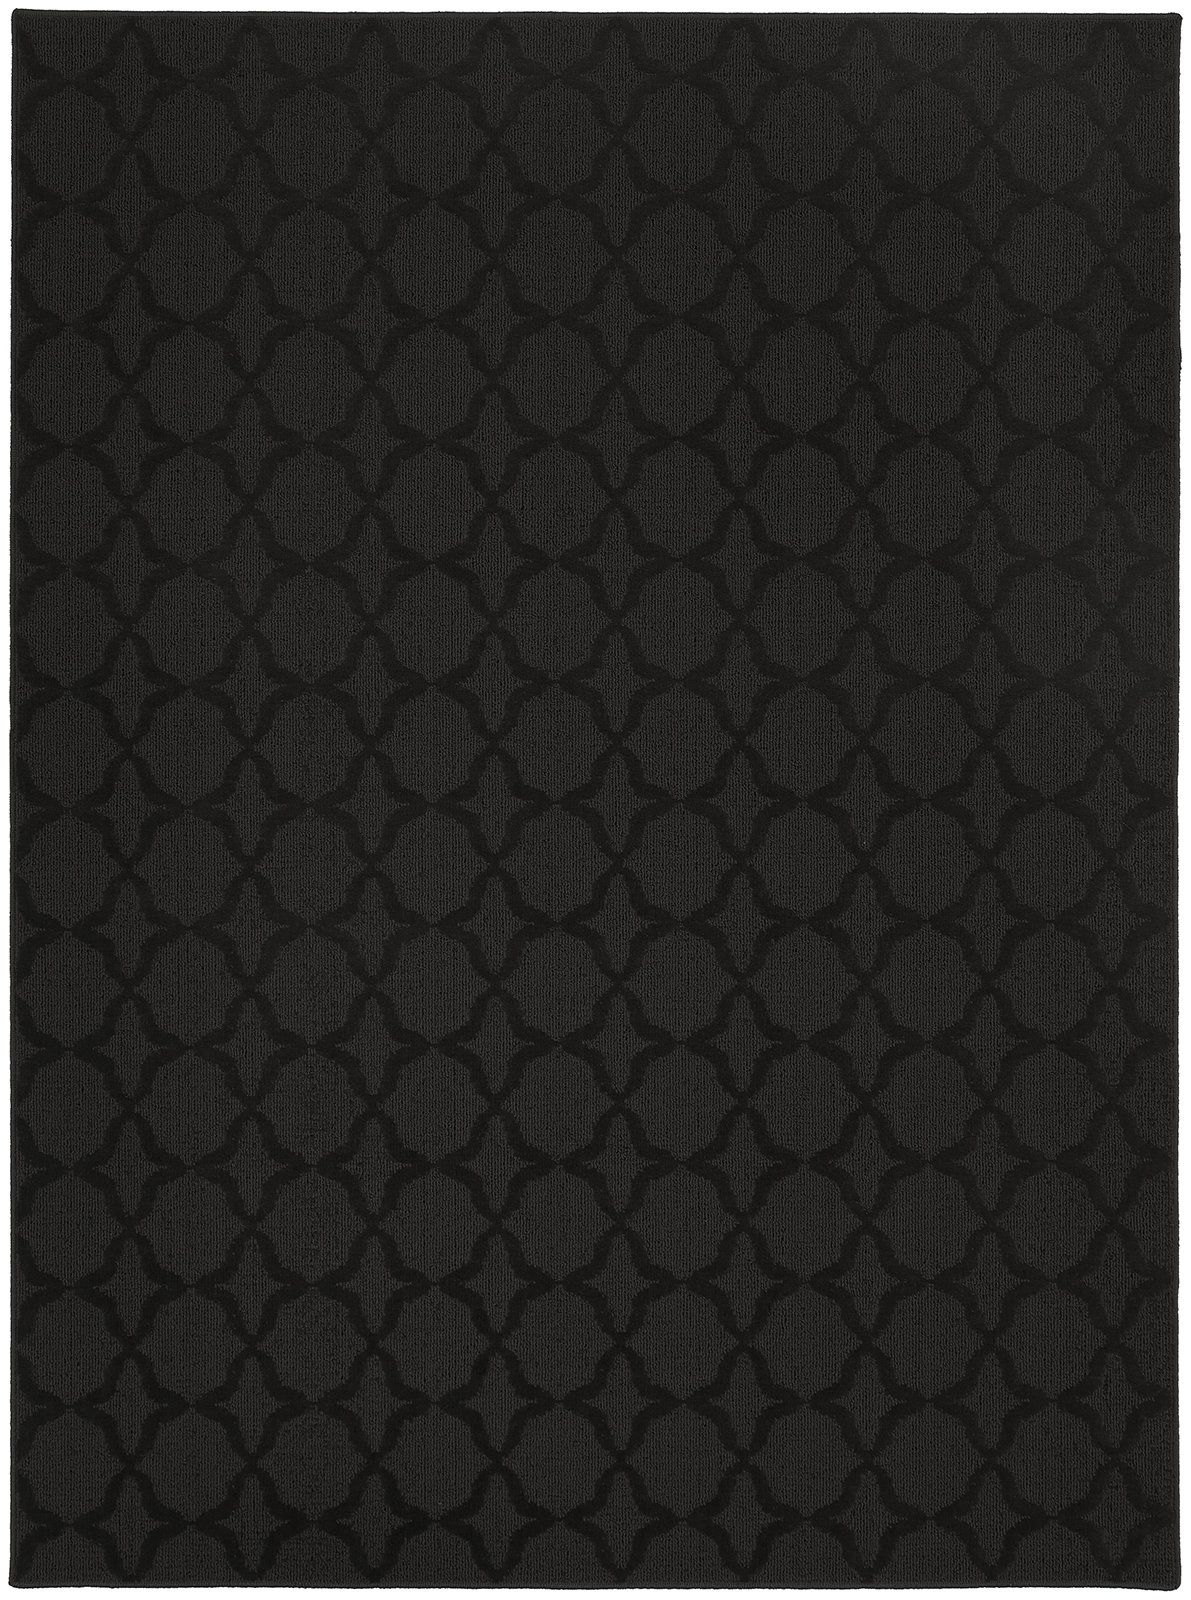 Garland Rug Sparta Area Rug, 7-Feet 6-Inch by 9-Feet 6-Inch, Black